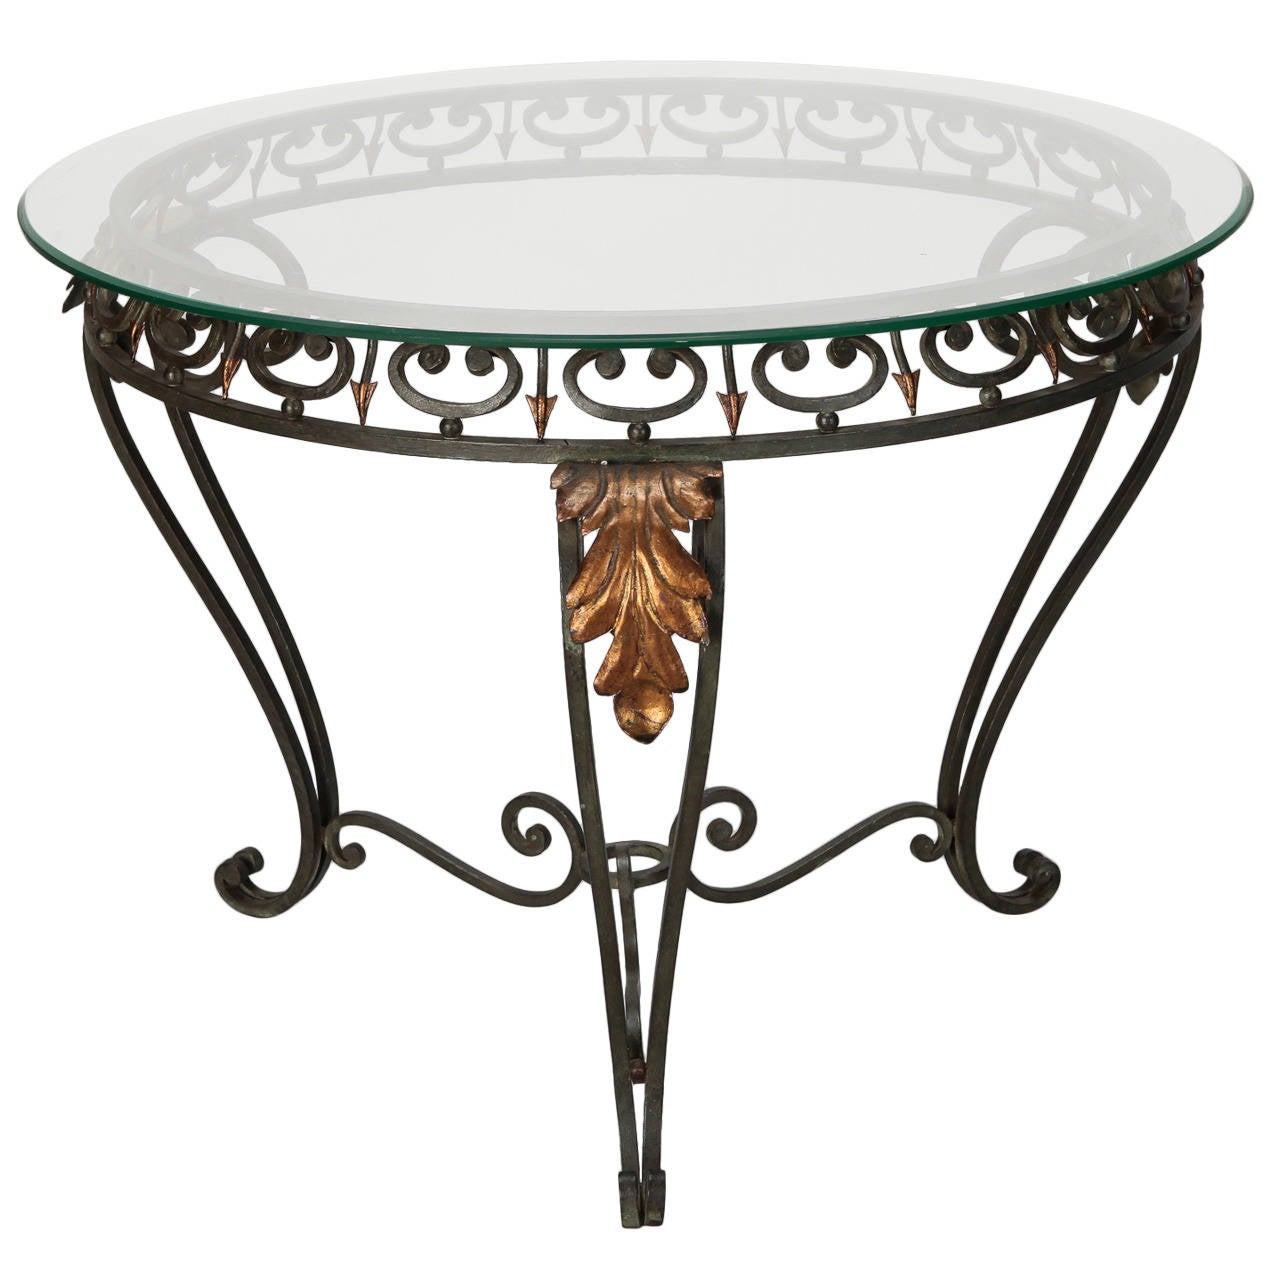 Italian Glass Top Table With Green Iron Frame And Gilt Metal Leaves For Sale At 1stdibs